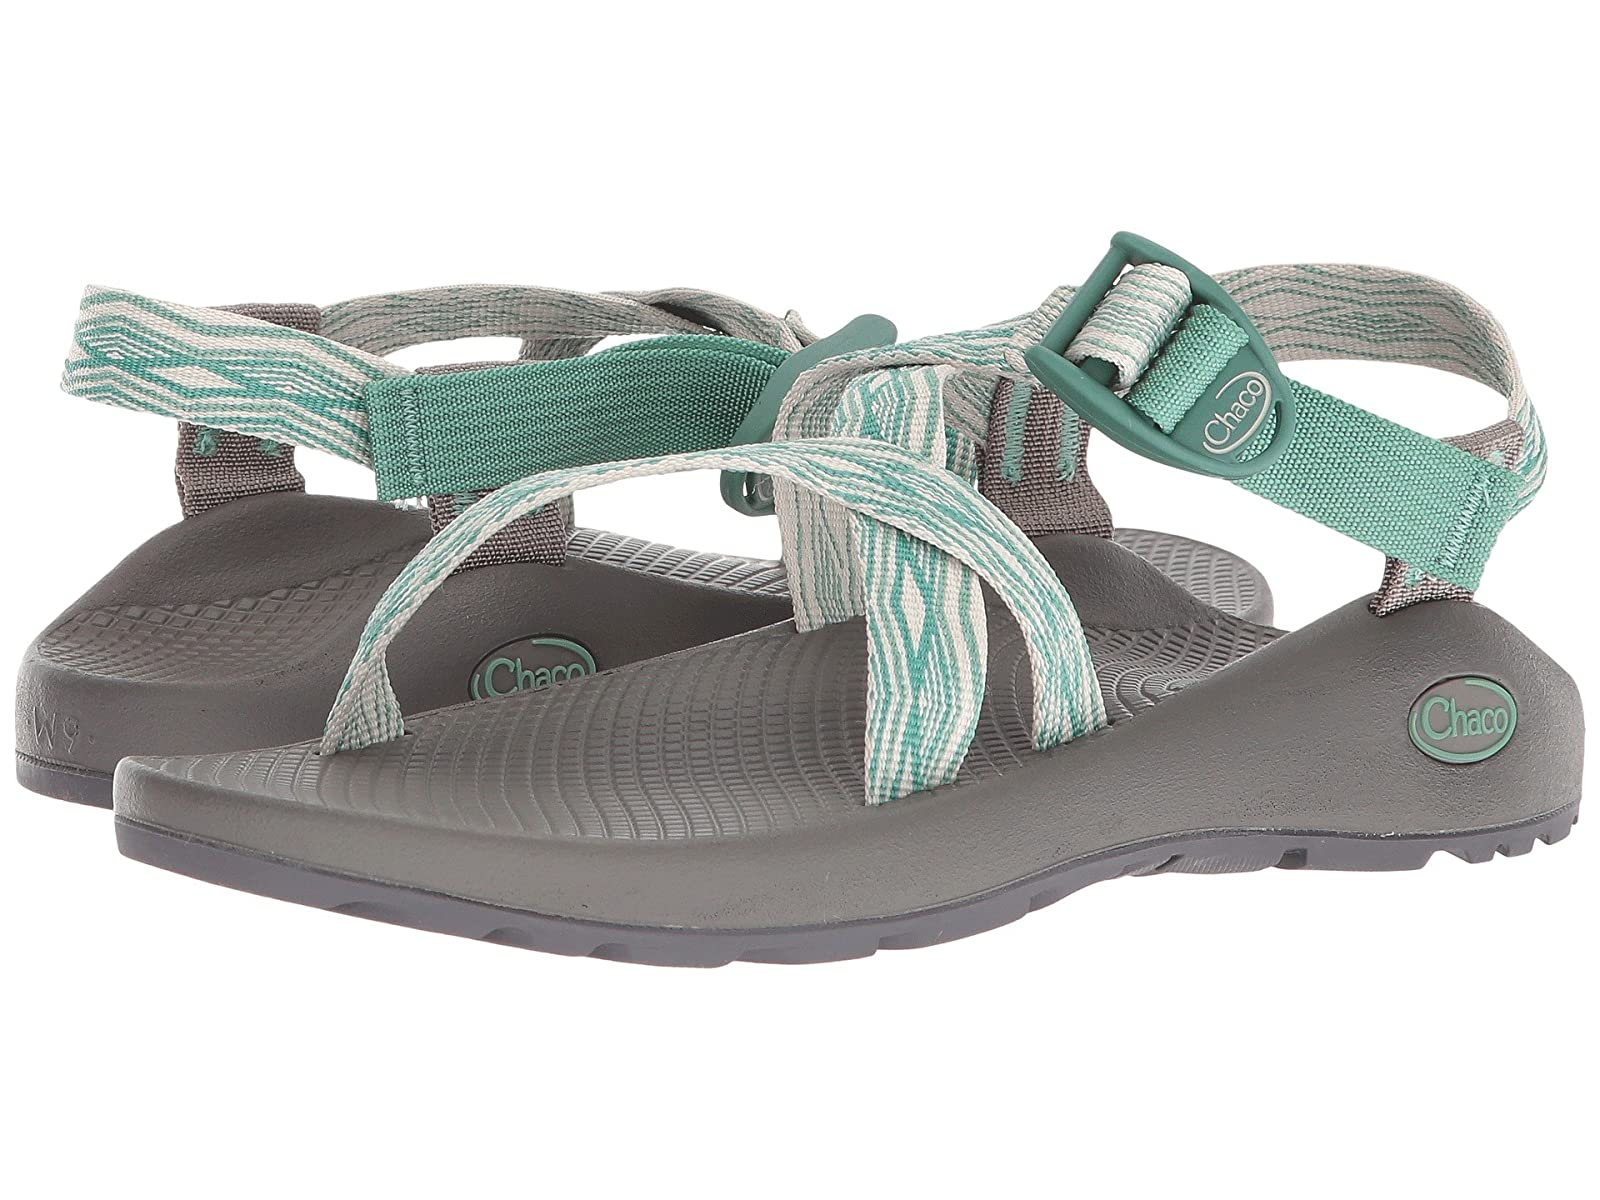 Chaco Z/1® ClassicComfortable and distinctive shoes